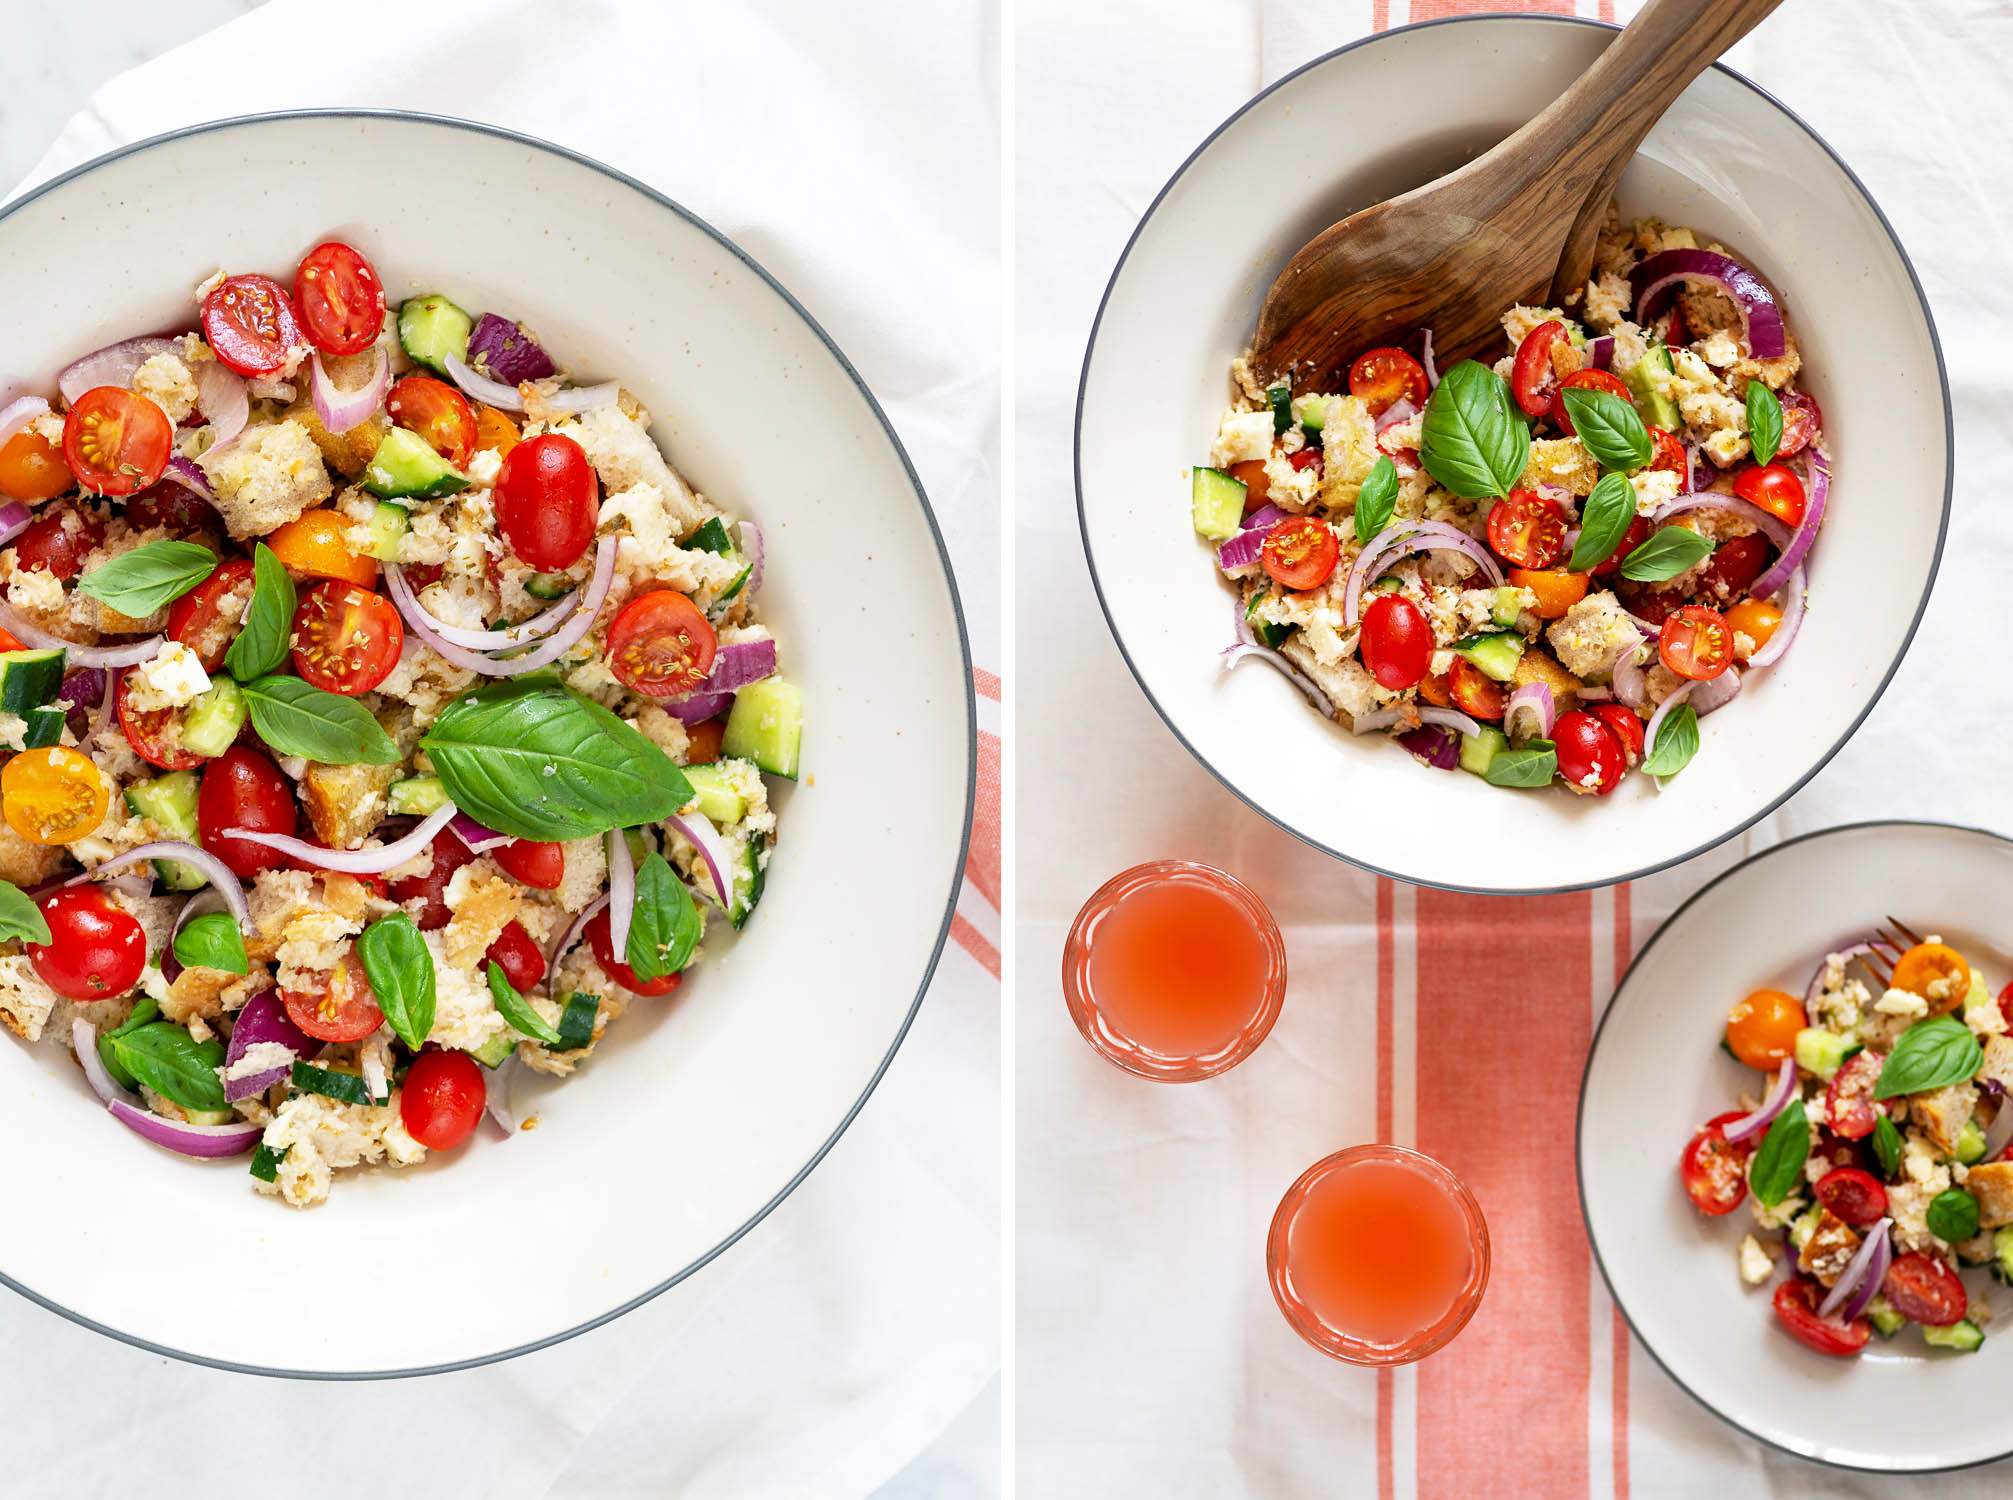 Tuscan Panzanella Salad with Tomatoes, Bread and Basil. Add your favourite seasonal ingredients, like red onions, cucumbers and mozzarella cheese. Panzanella is perfect for lunch on hot summer days.